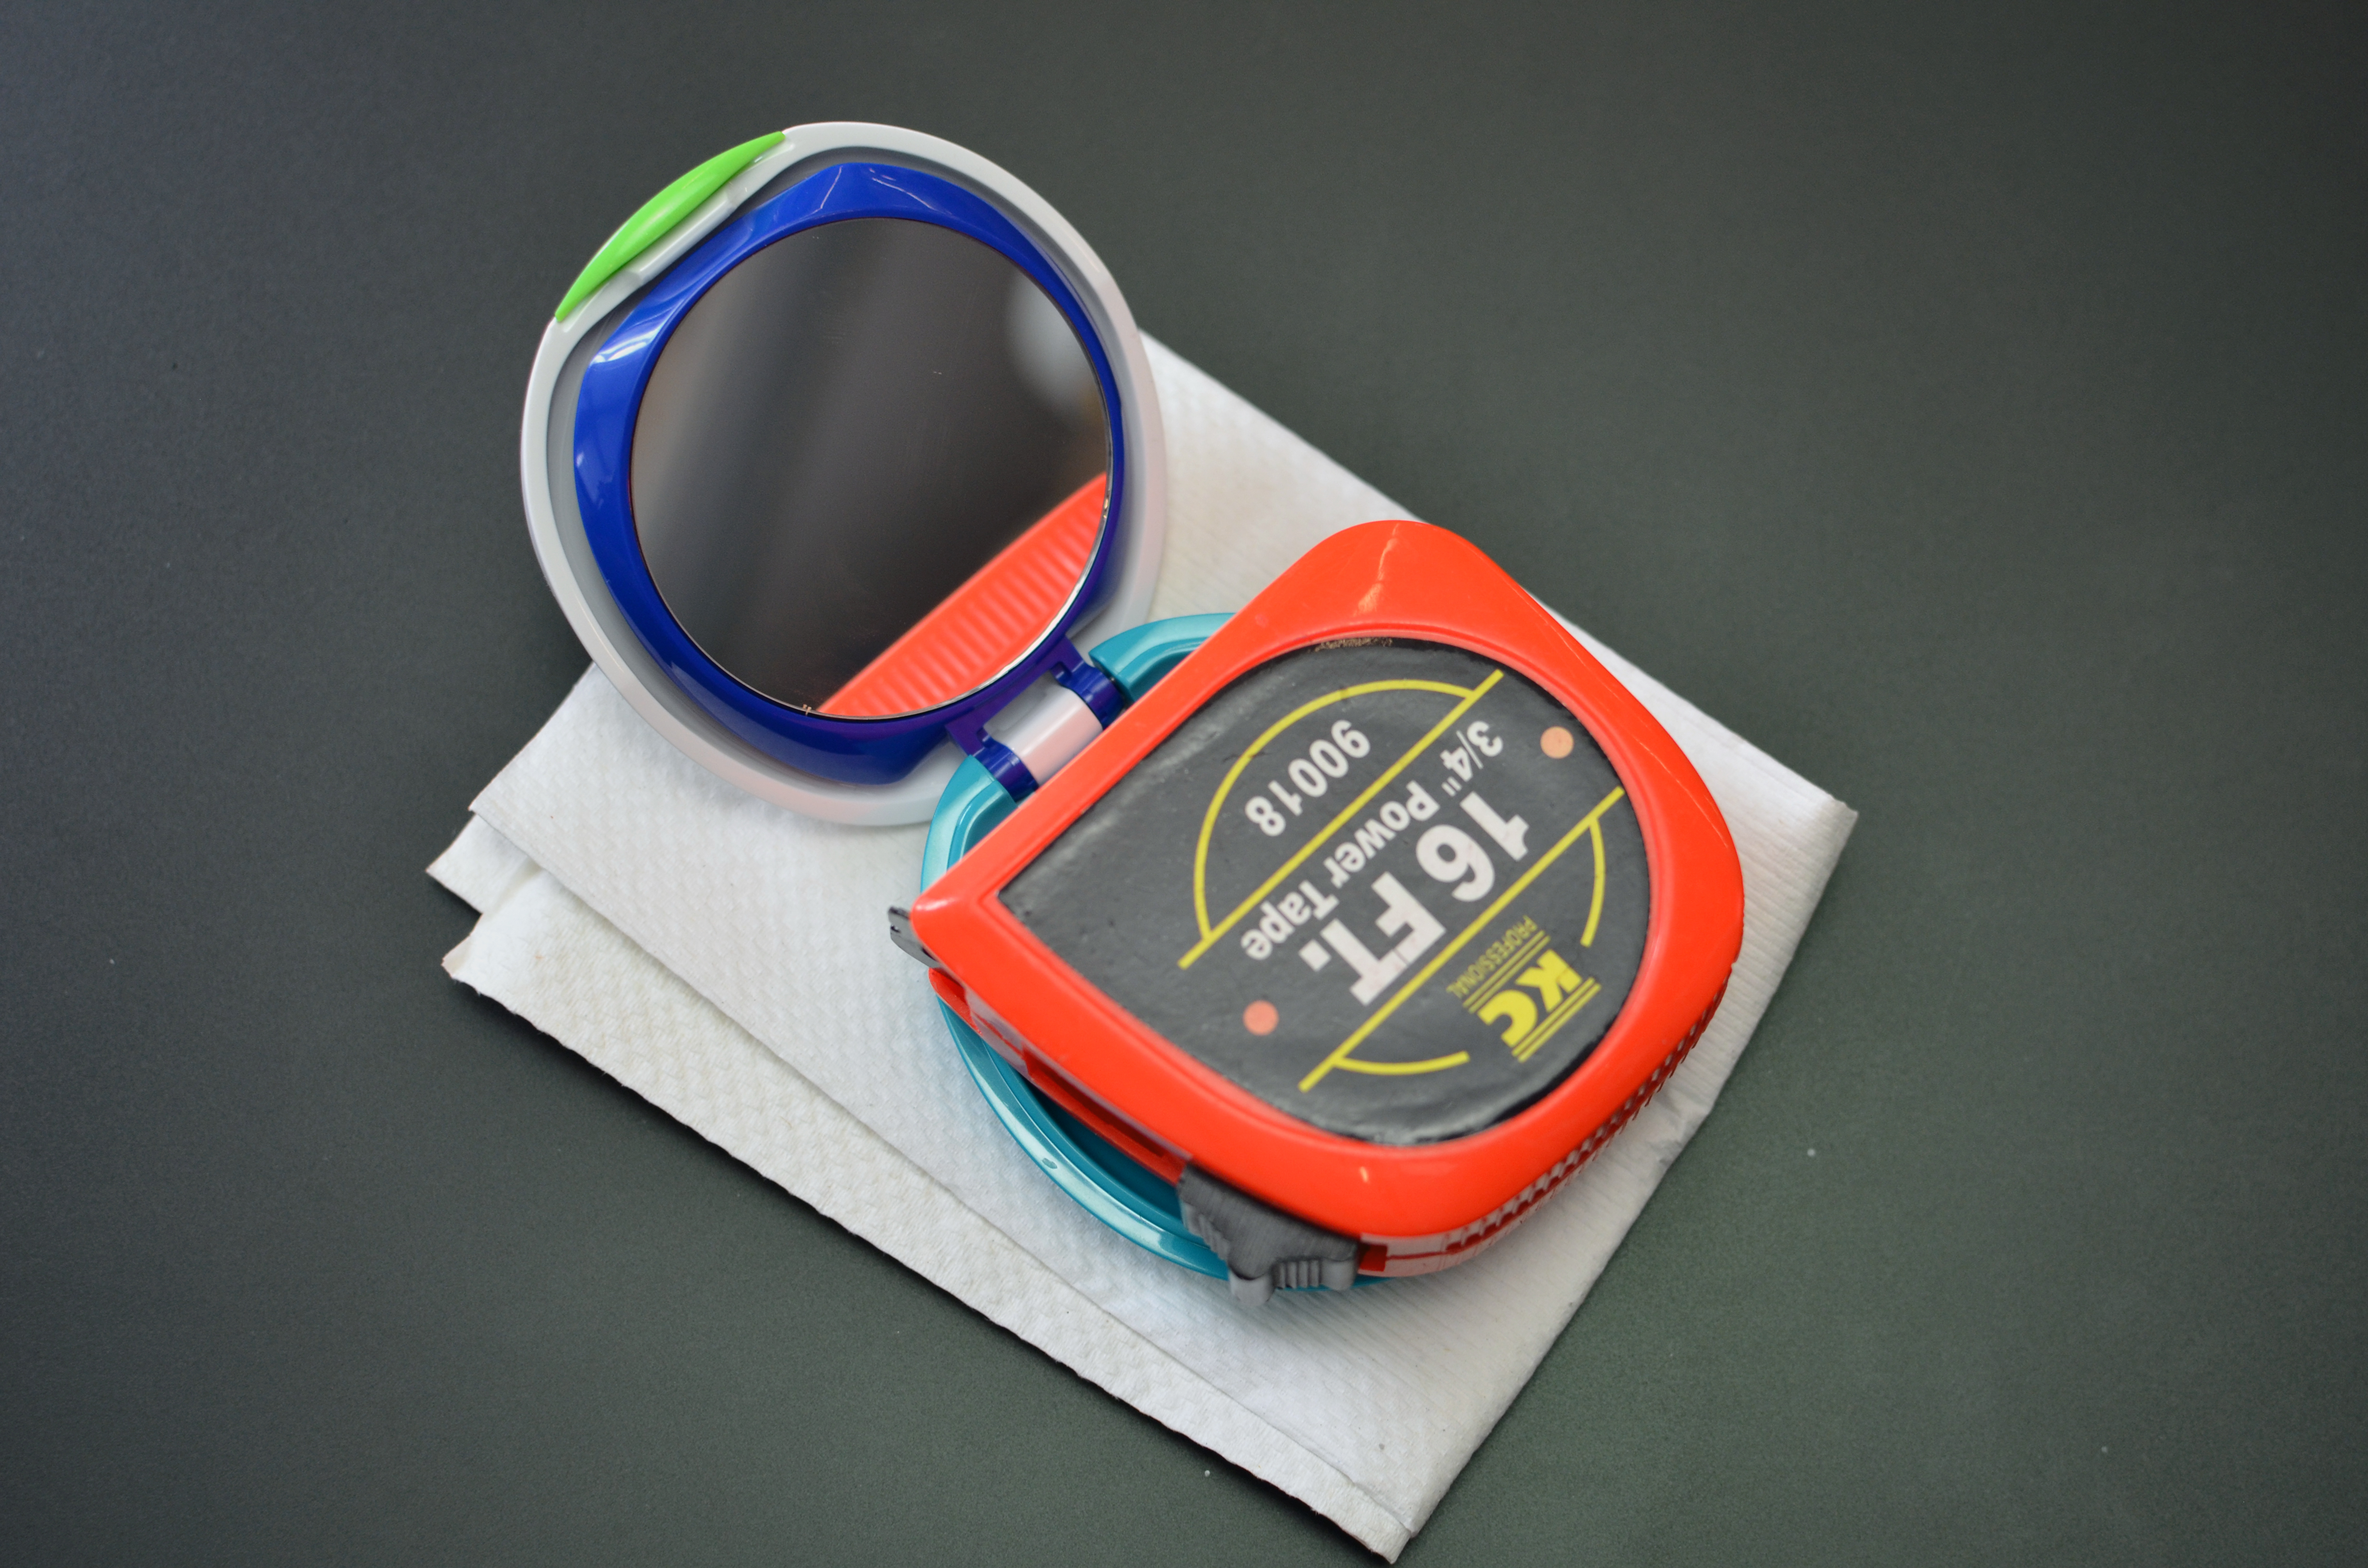 projects_DIY-LED-makeup-compact-mirror-04.jpg